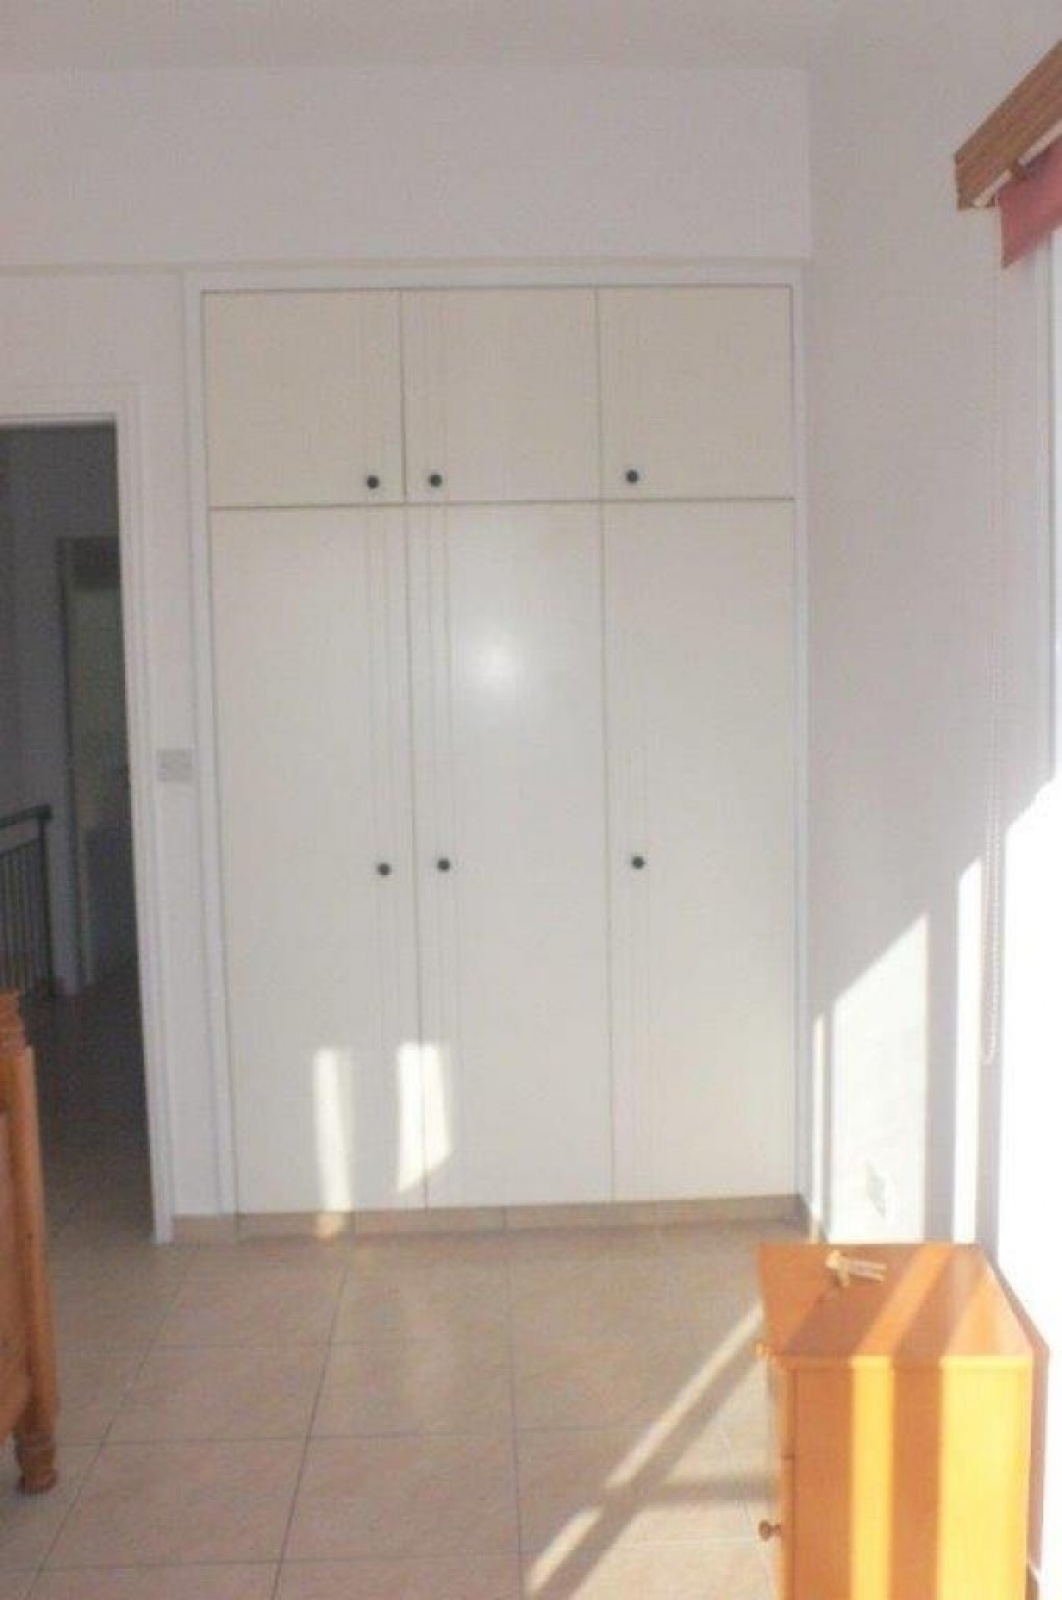 Residential Town House - Polis Tonwhouse for Sale